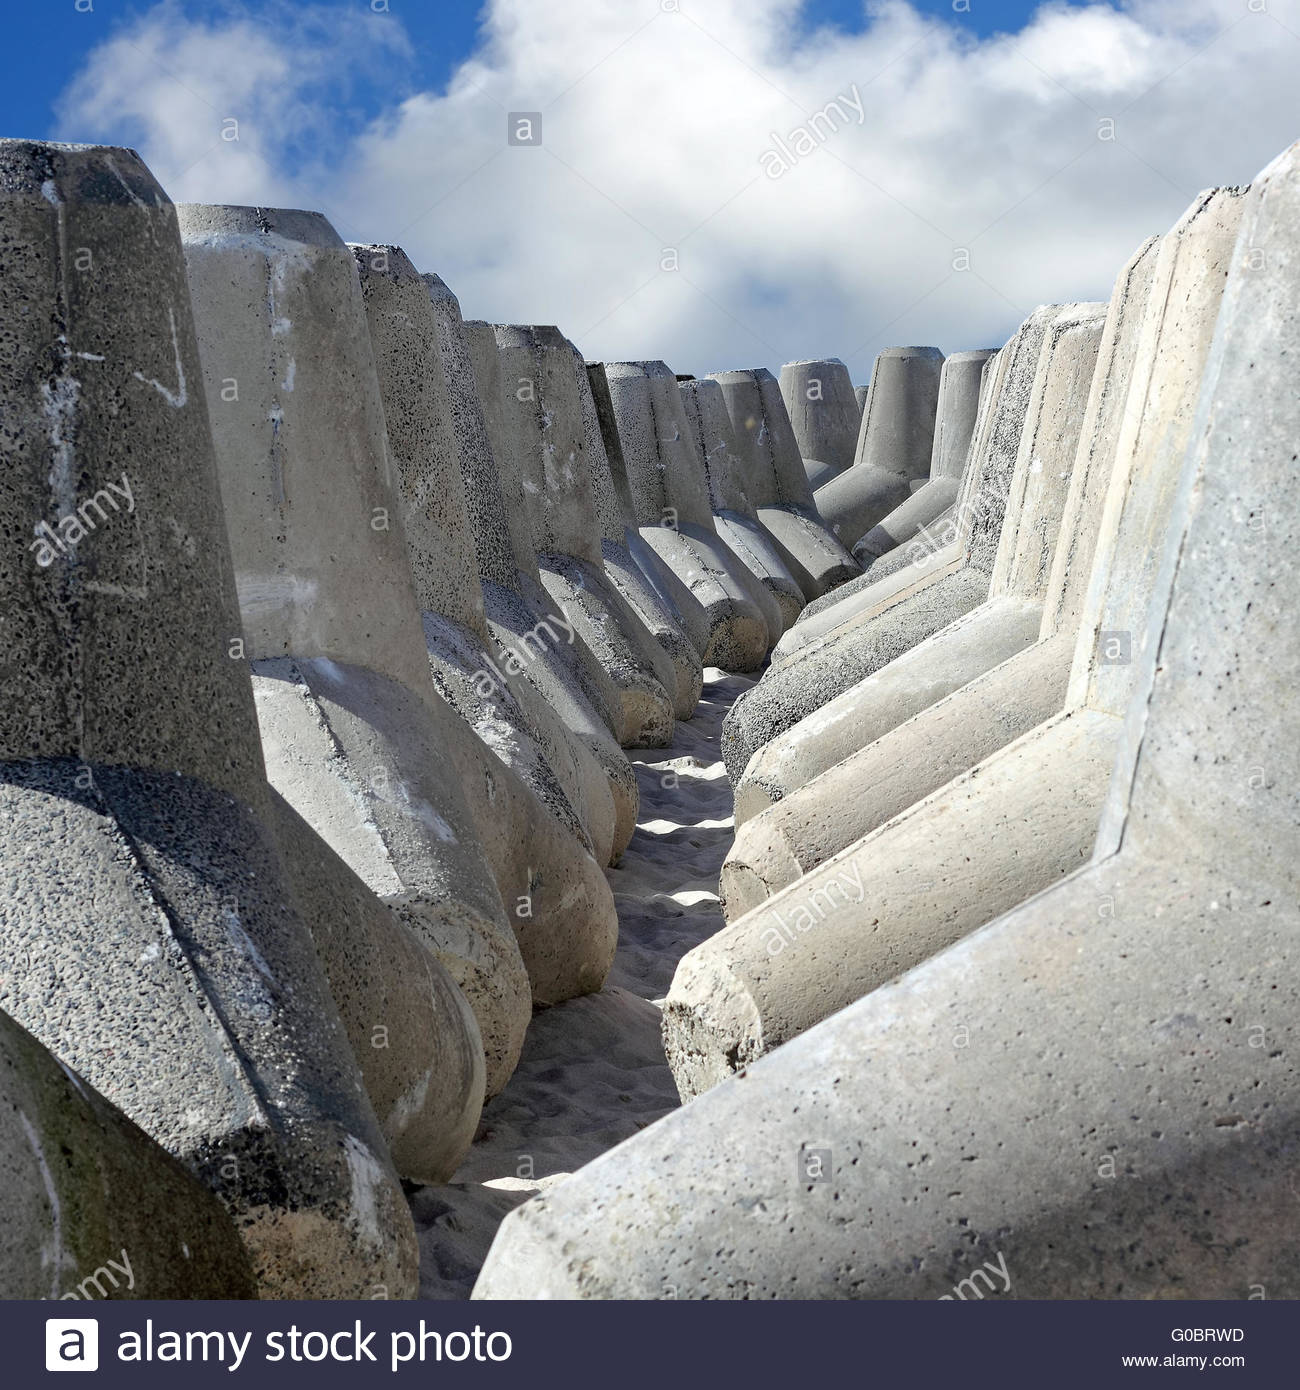 Stored Tetrapods for the coast protection on Sylt - Stock Image